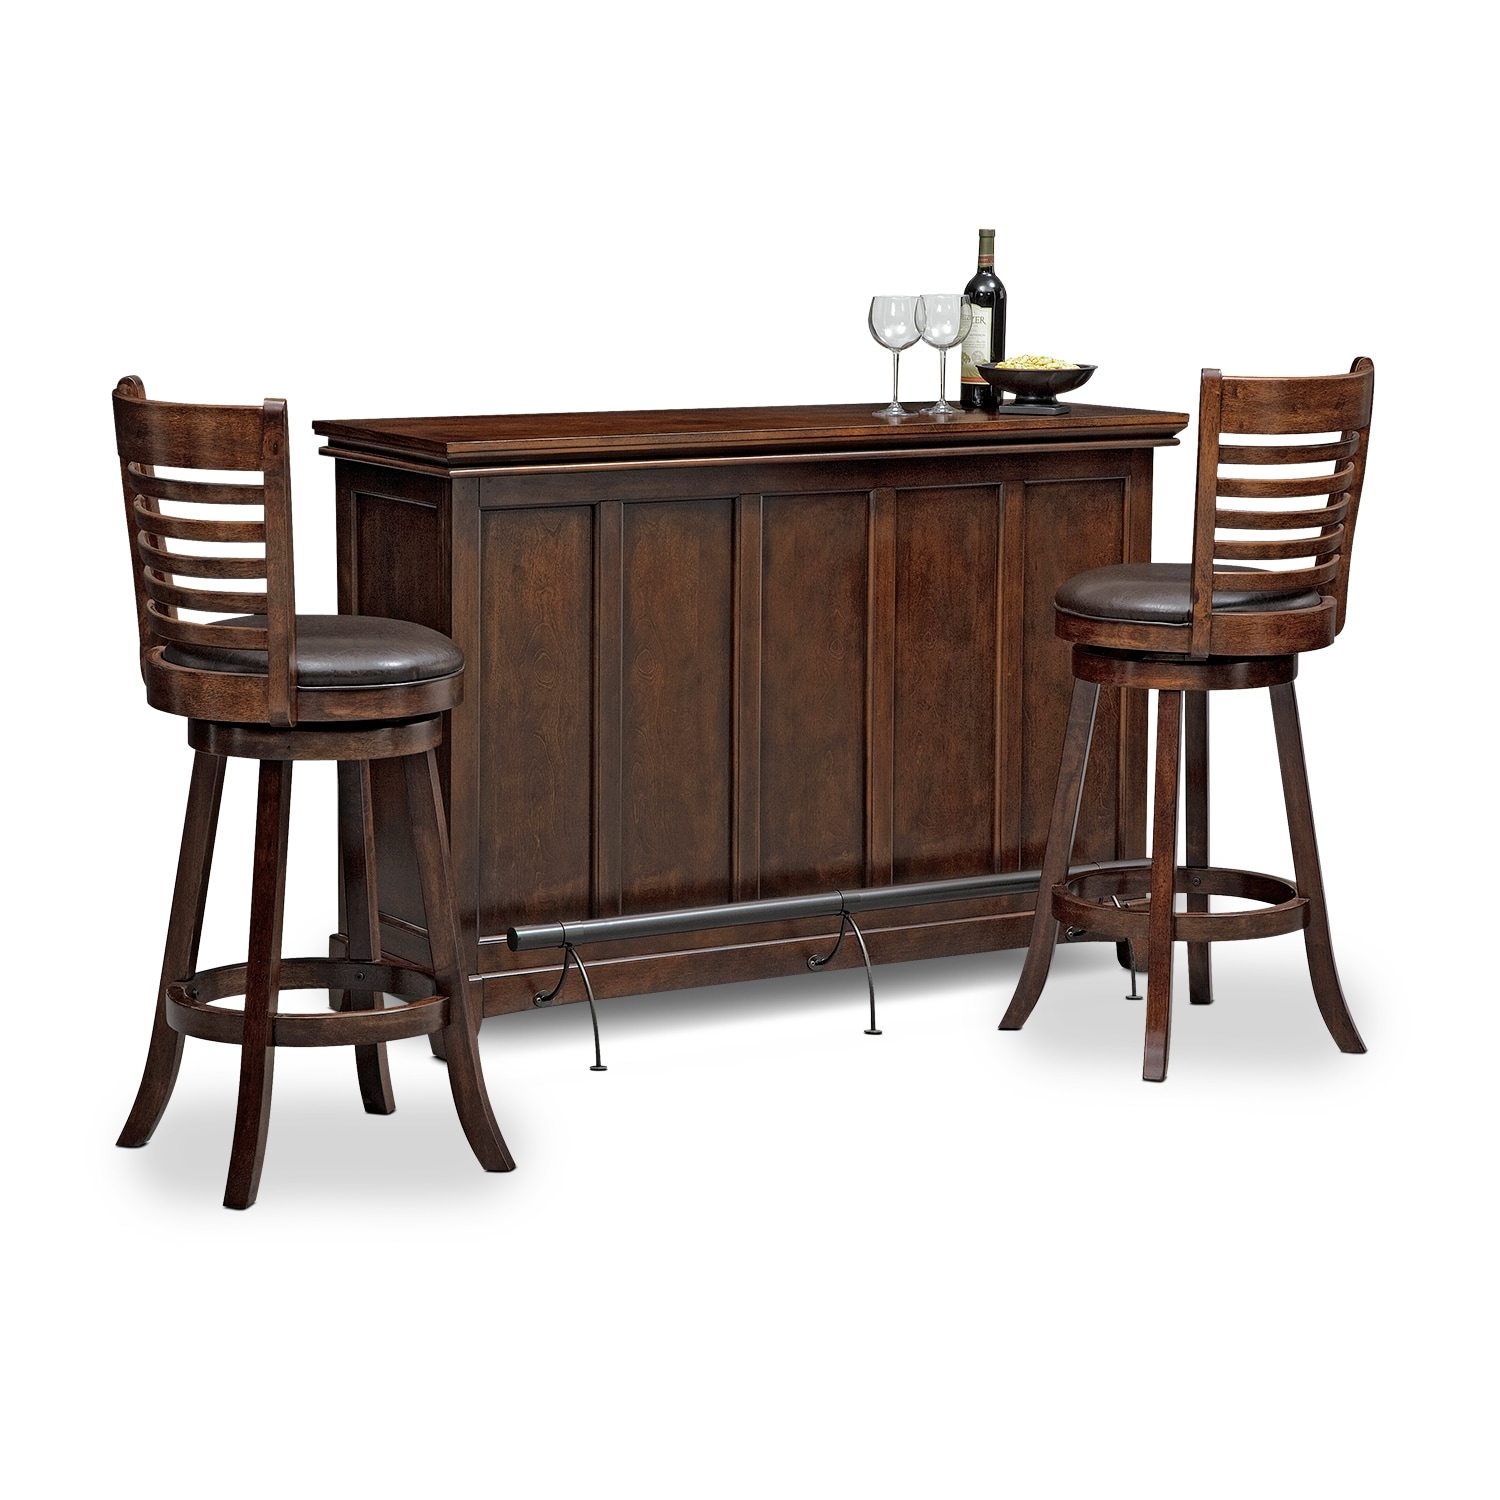 Bond turner 3 pc bar set for 3 pc dining room set